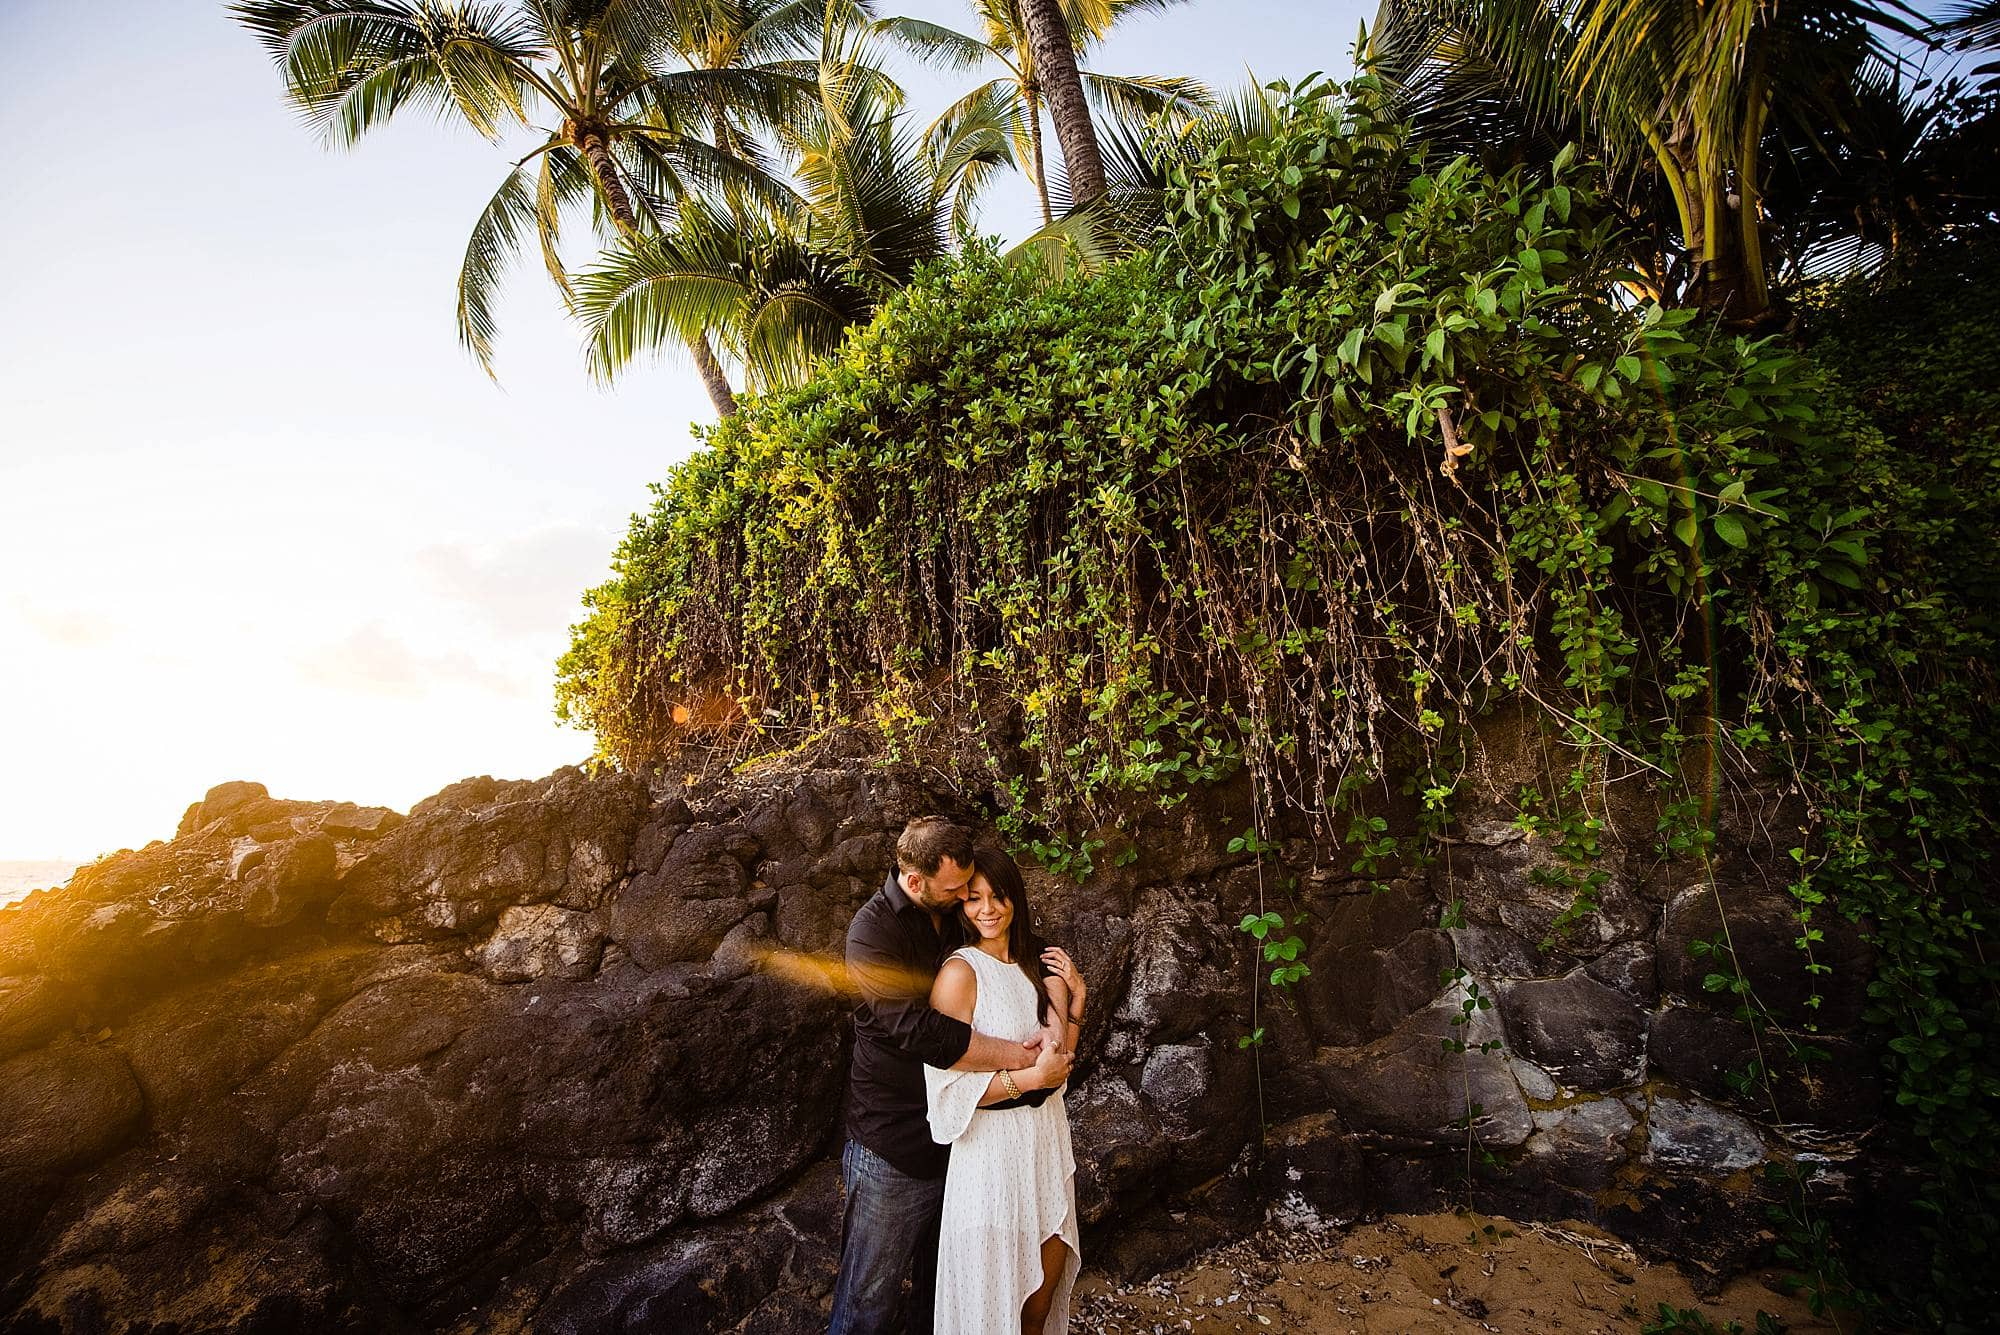 sunset portraits in maui with vines